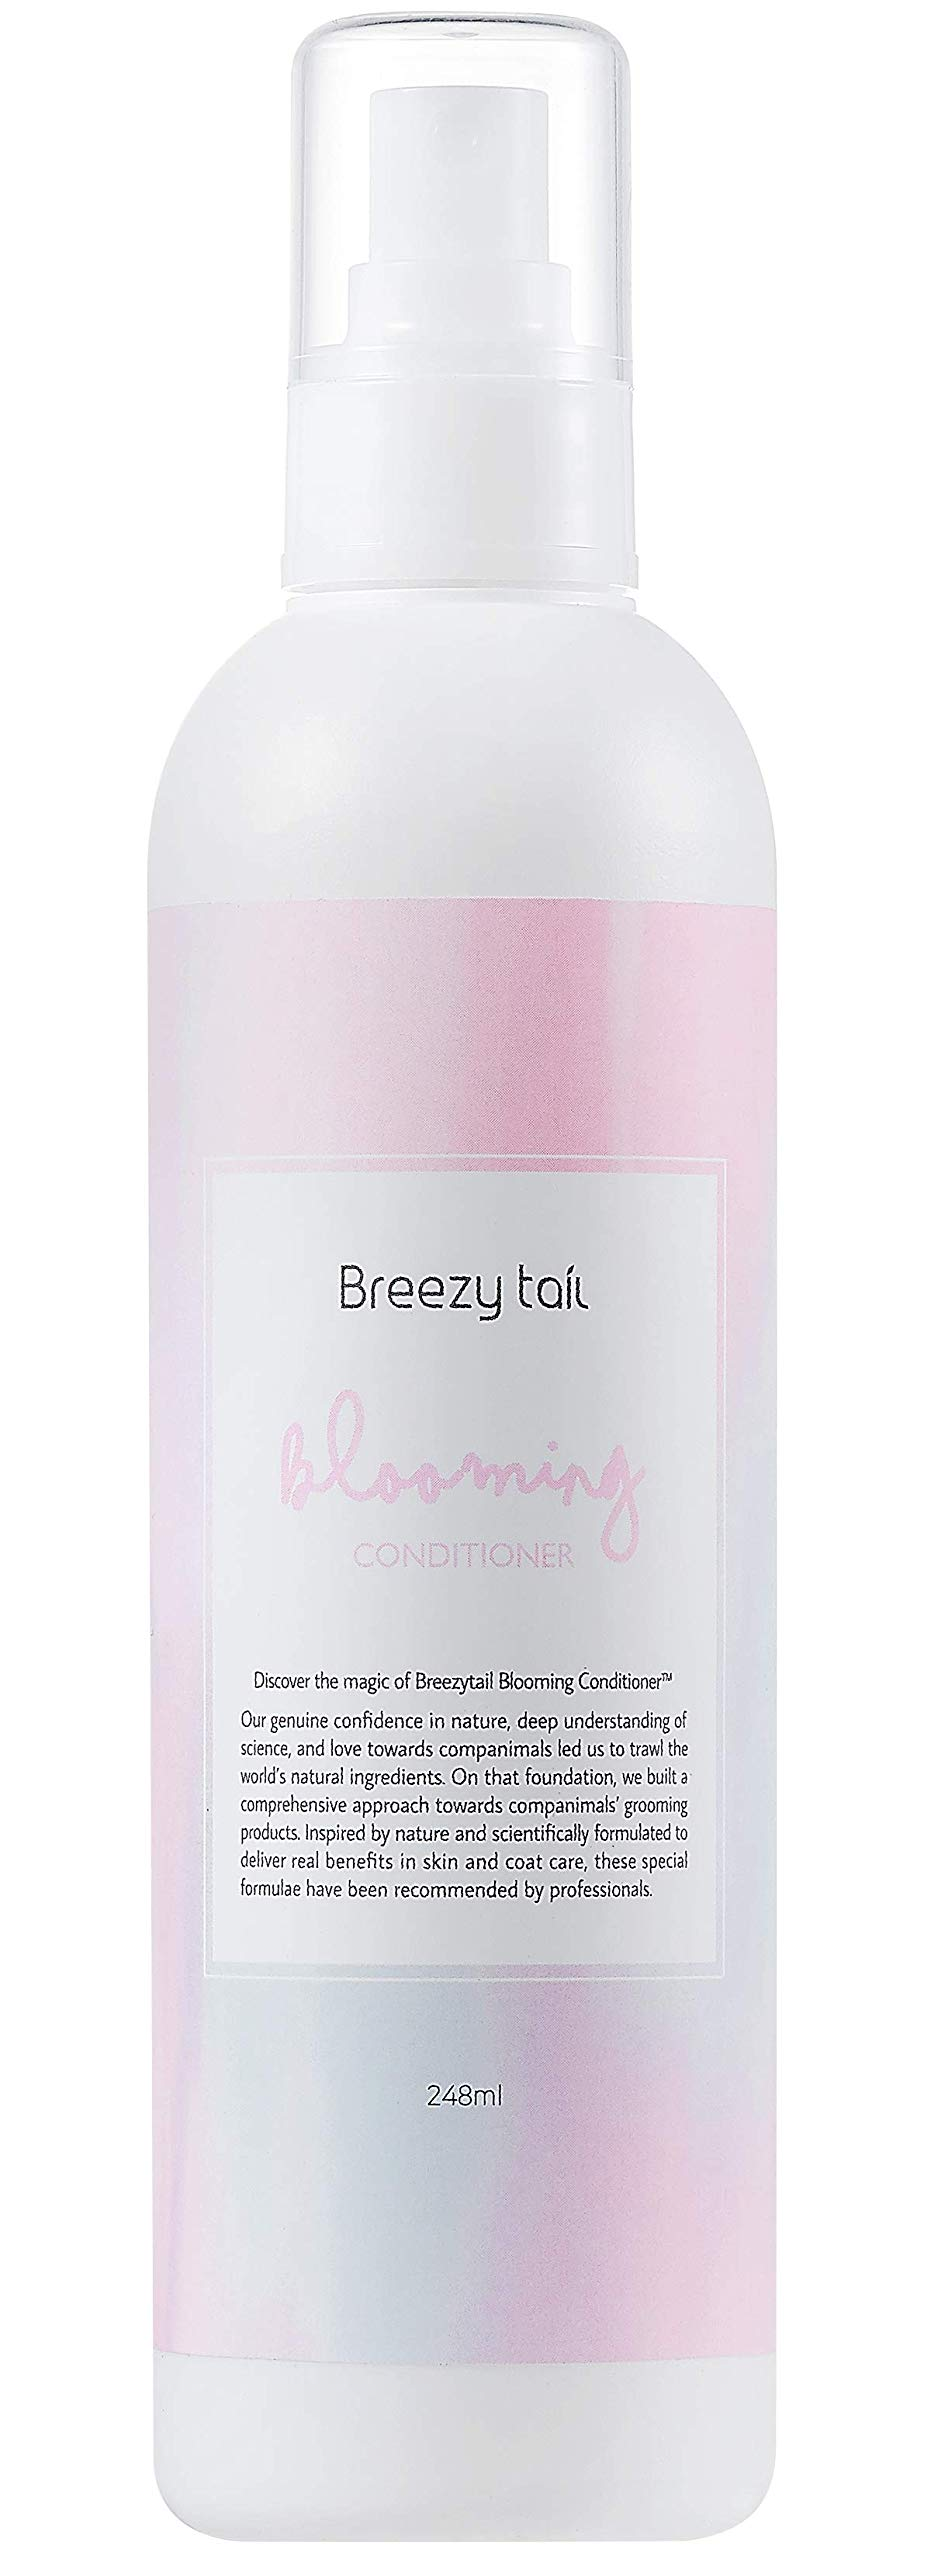 Breezytail Blooming Conditioner - Premium Natural Leave-in Conditioner for Dog | Hypoallergenic Skin & Coat Care | Natural Pearl Shine